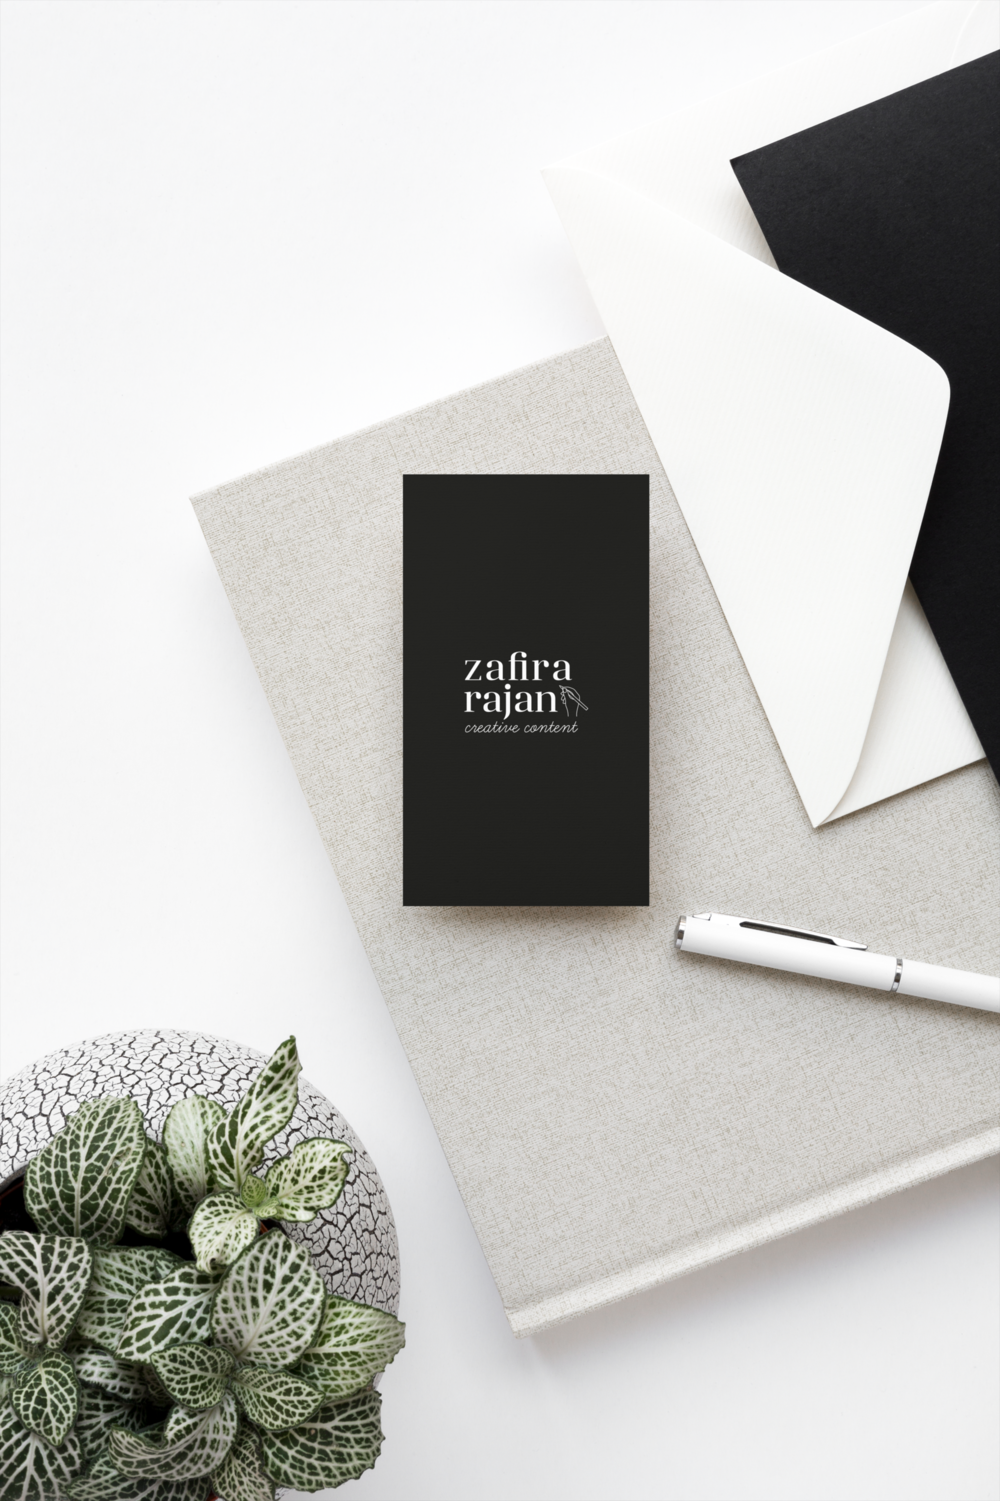 Zafira Rajan's business cards shown on top of a grey notebook, next to a black envelope and a light green plant